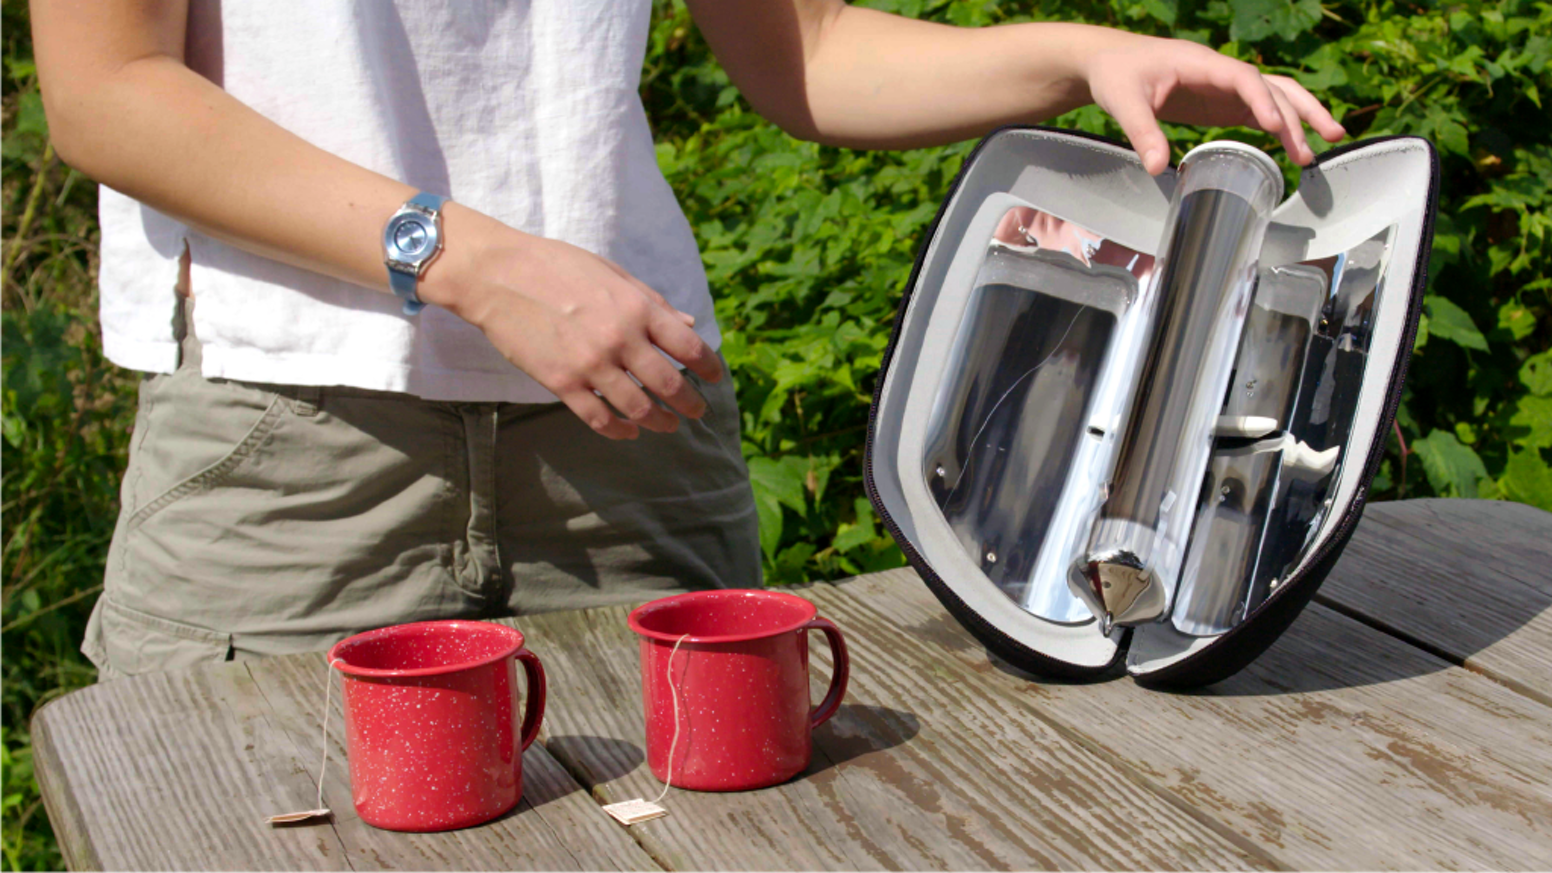 GoSun Go: Boil Water and Cook Meals with Solar Power